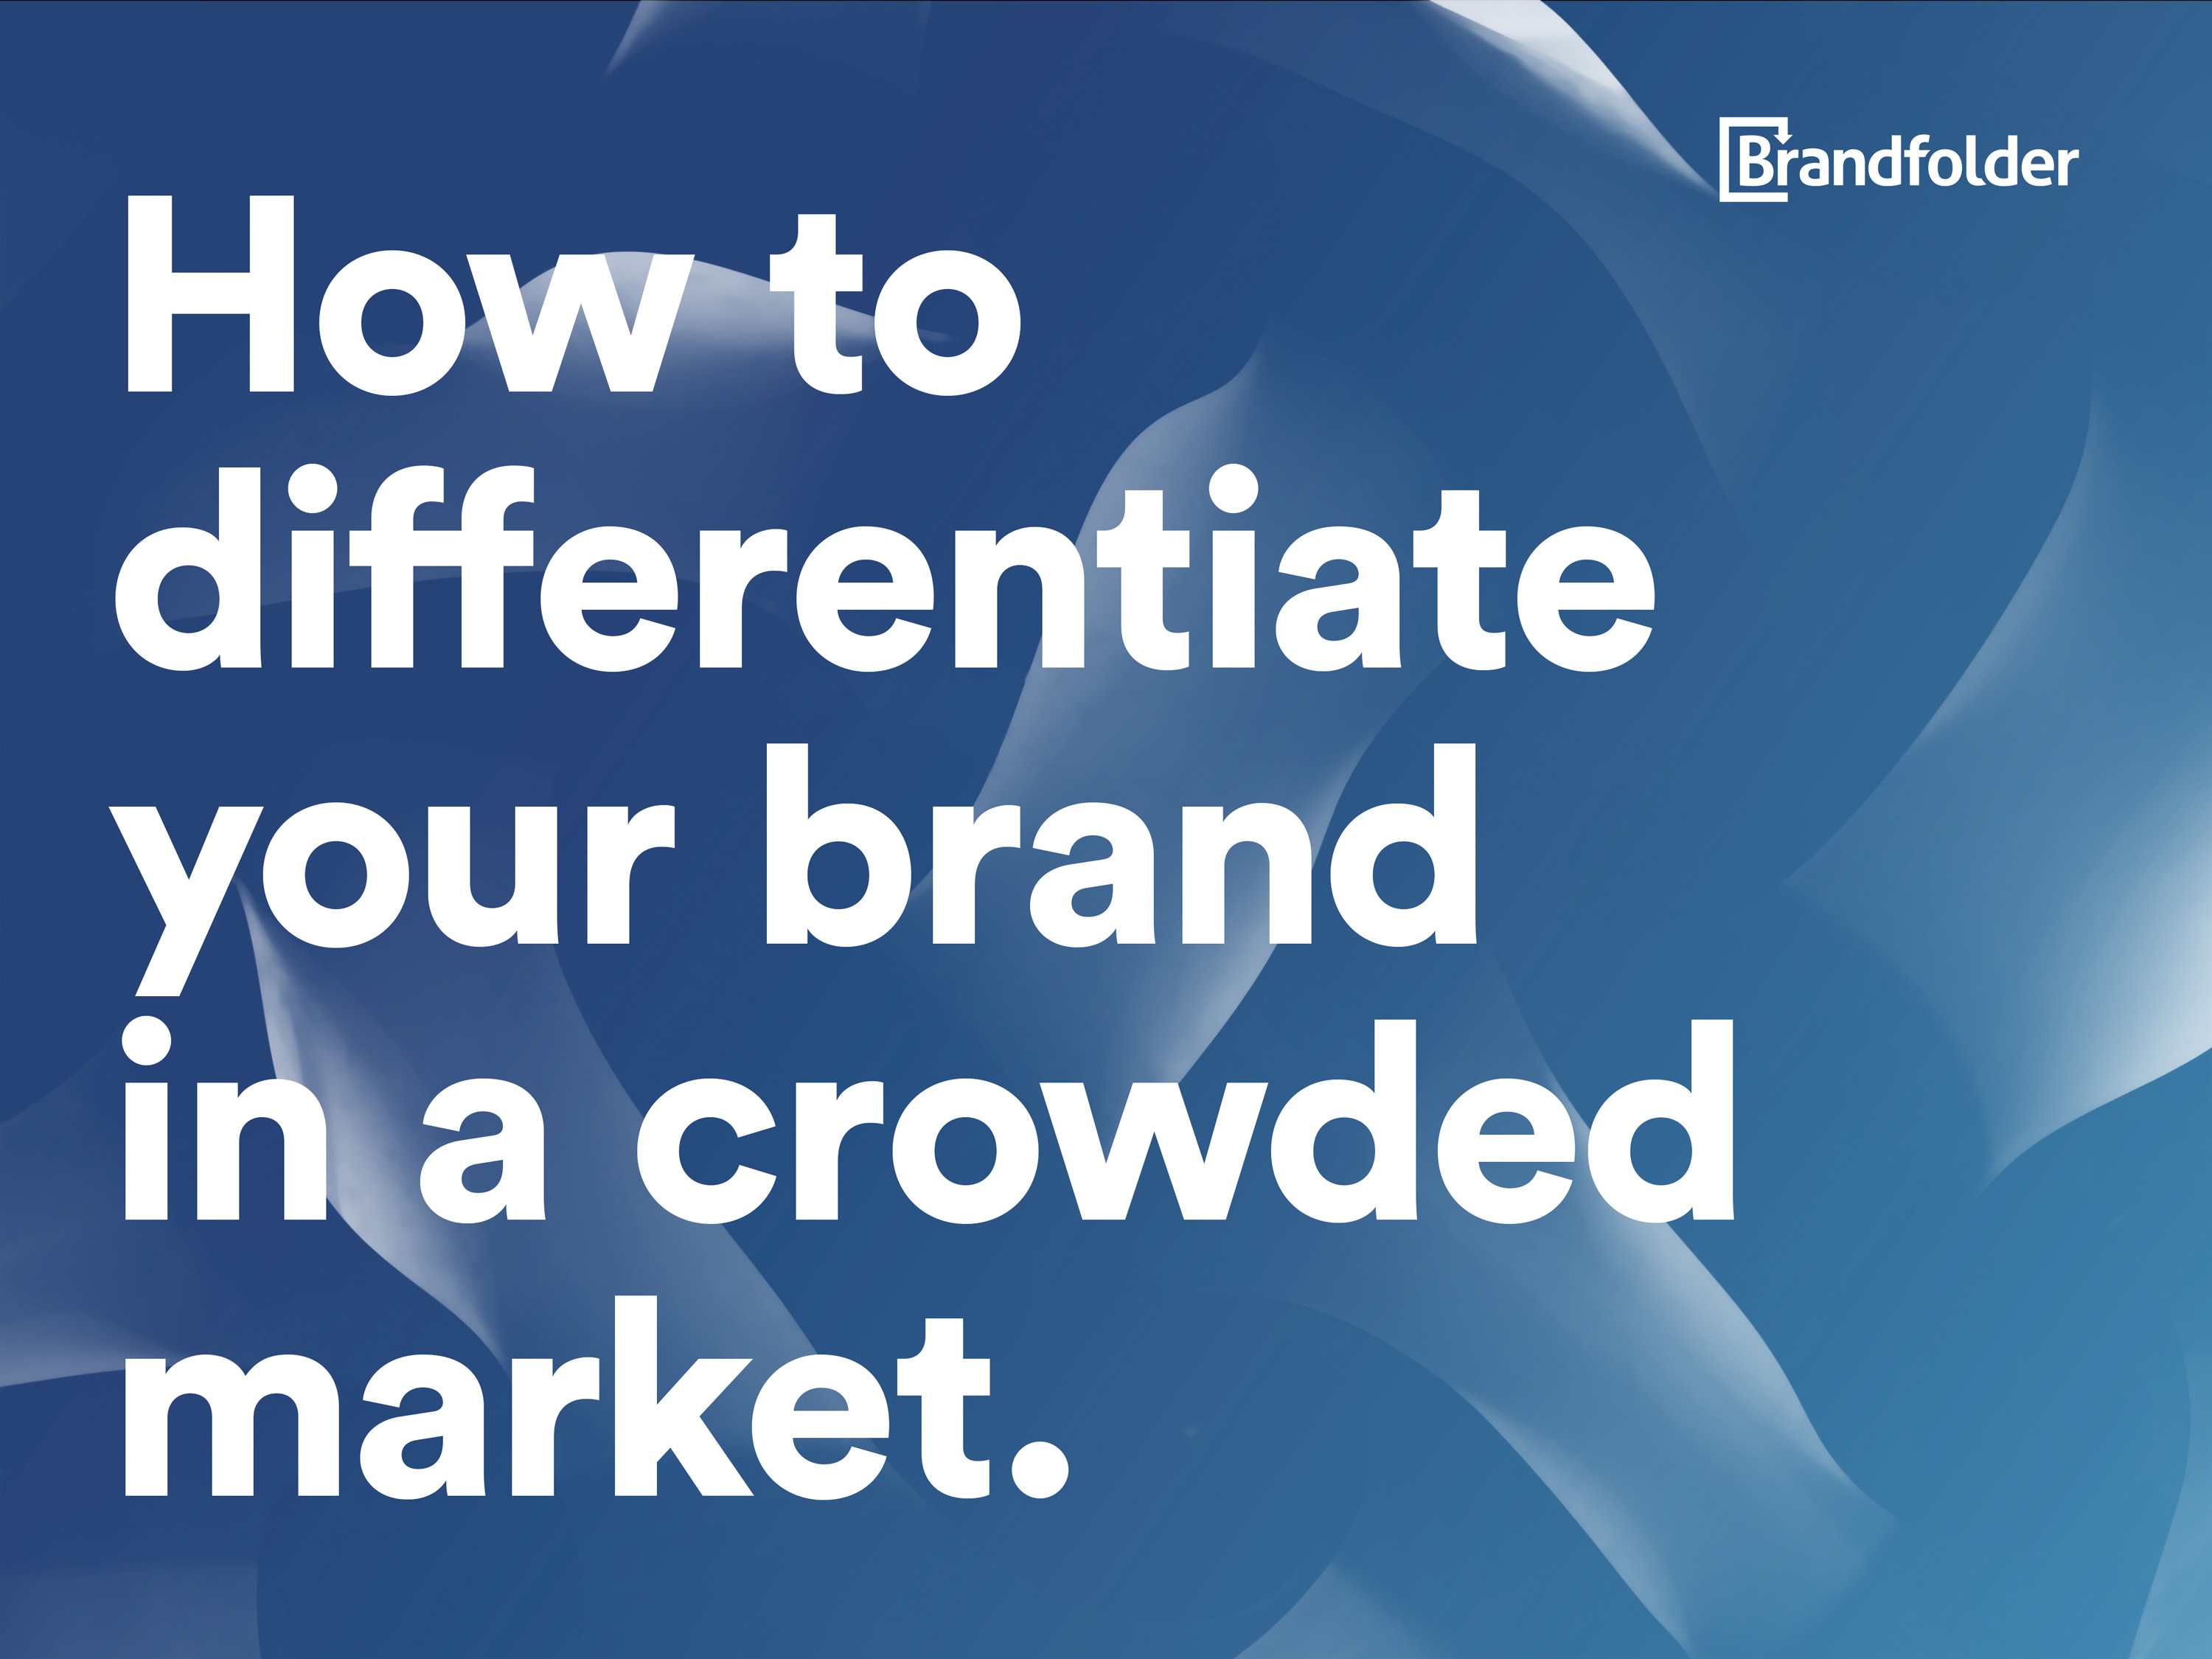 How to Differentiate Your Brand in a Crowded Market